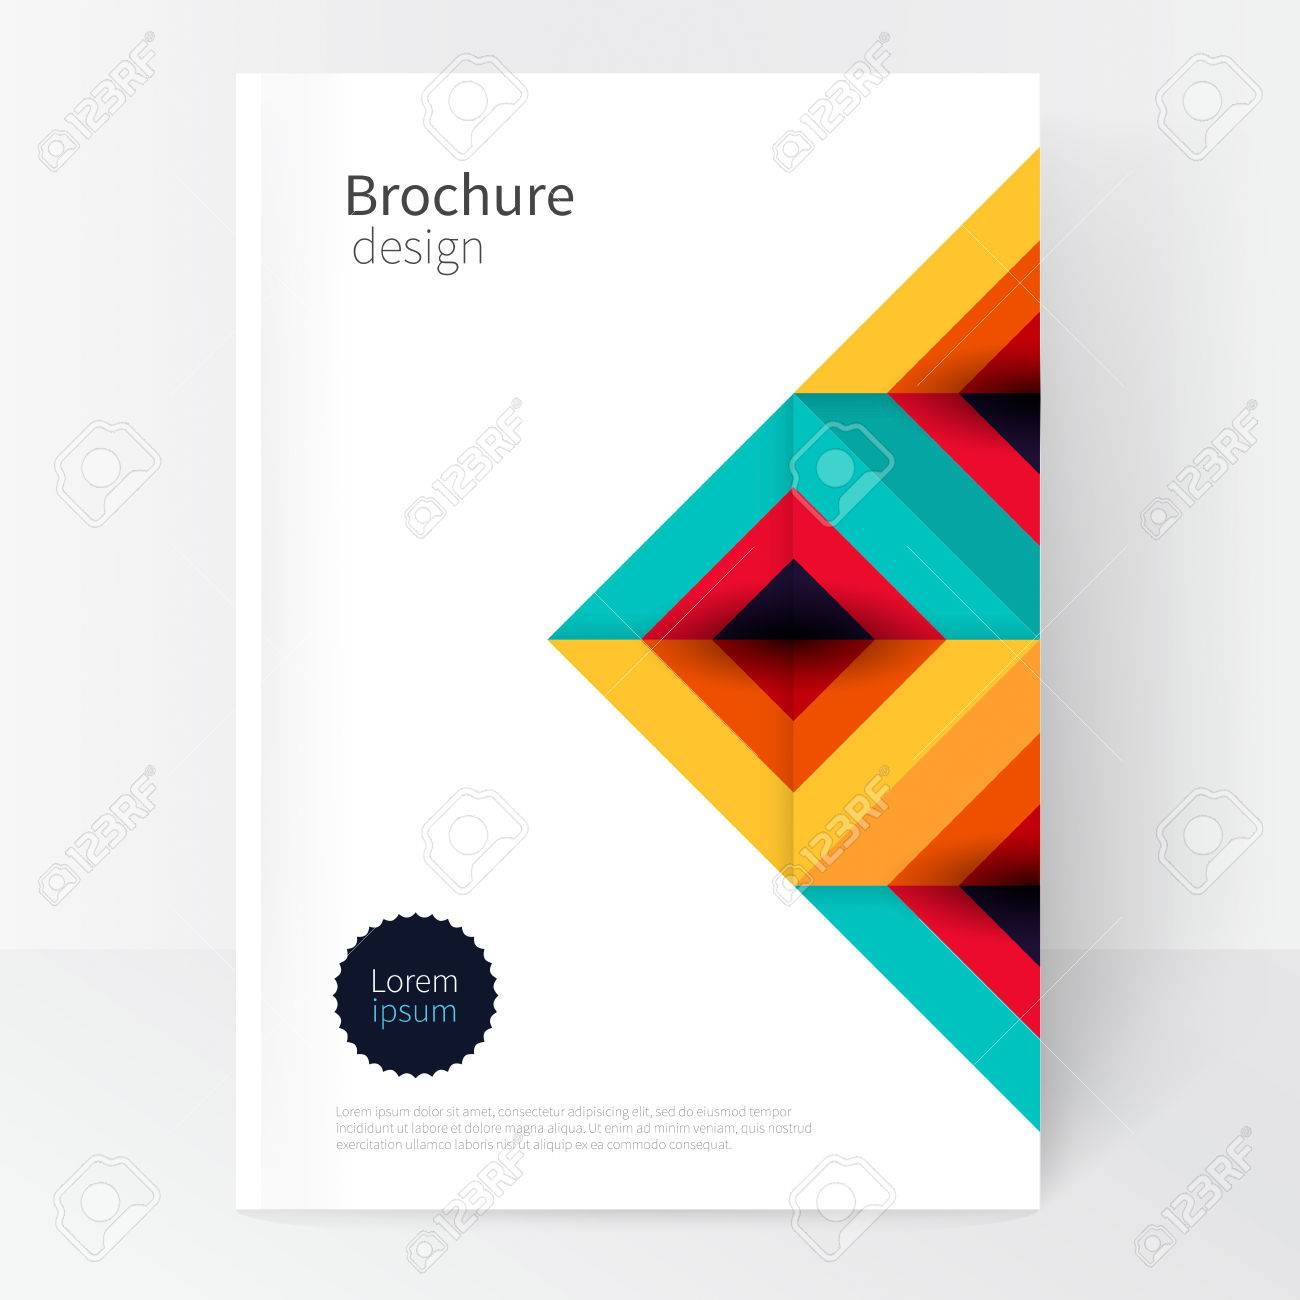 Modern Minimalistic cover template. Book design creative concept cover for catalog, report, brochure. turquoise, red & yellow abstract geometric background.geometric shapes Squares and triangles - 65425892